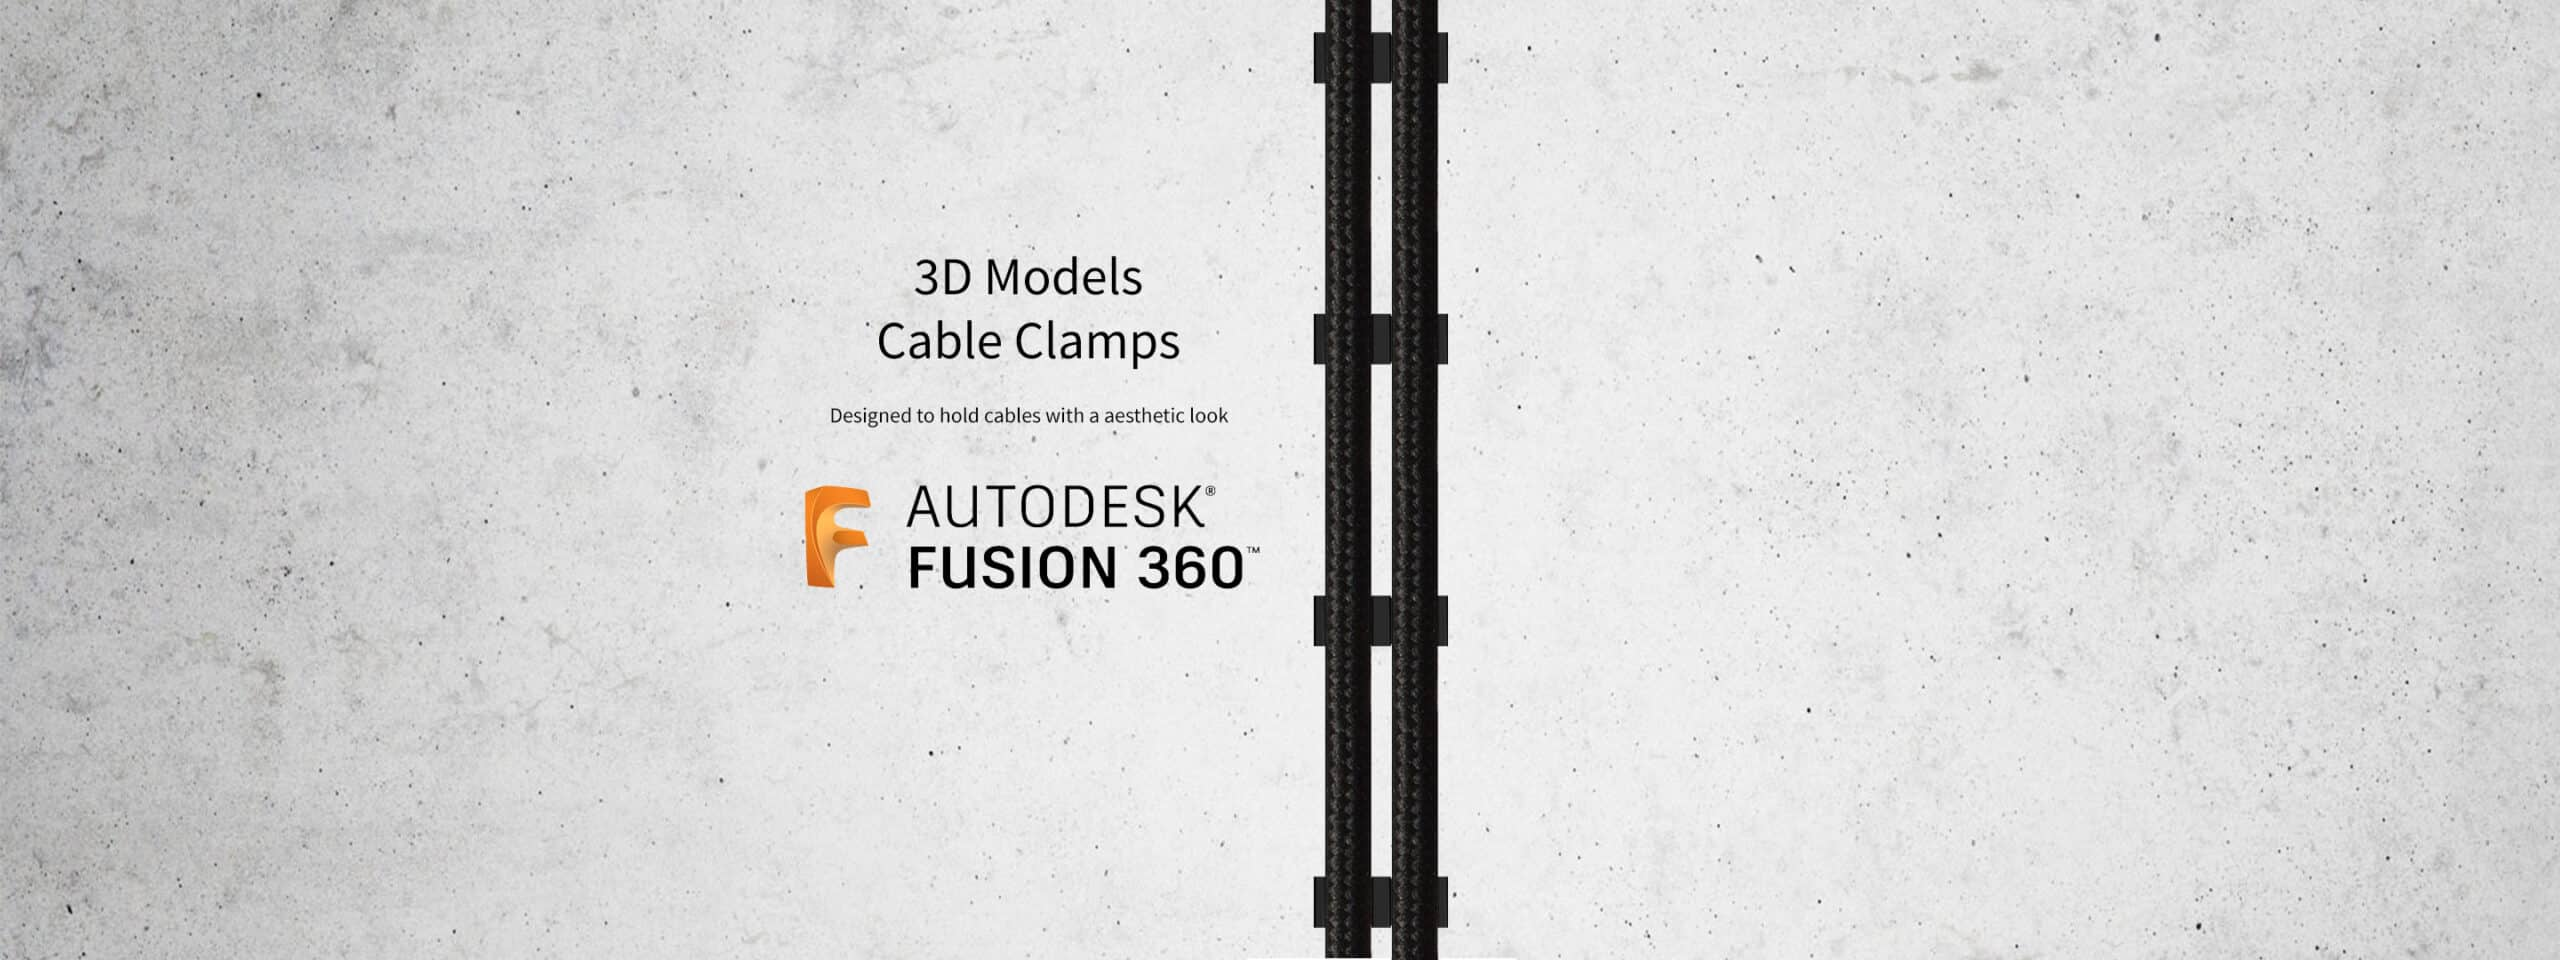 3D Models – Cable Clamps